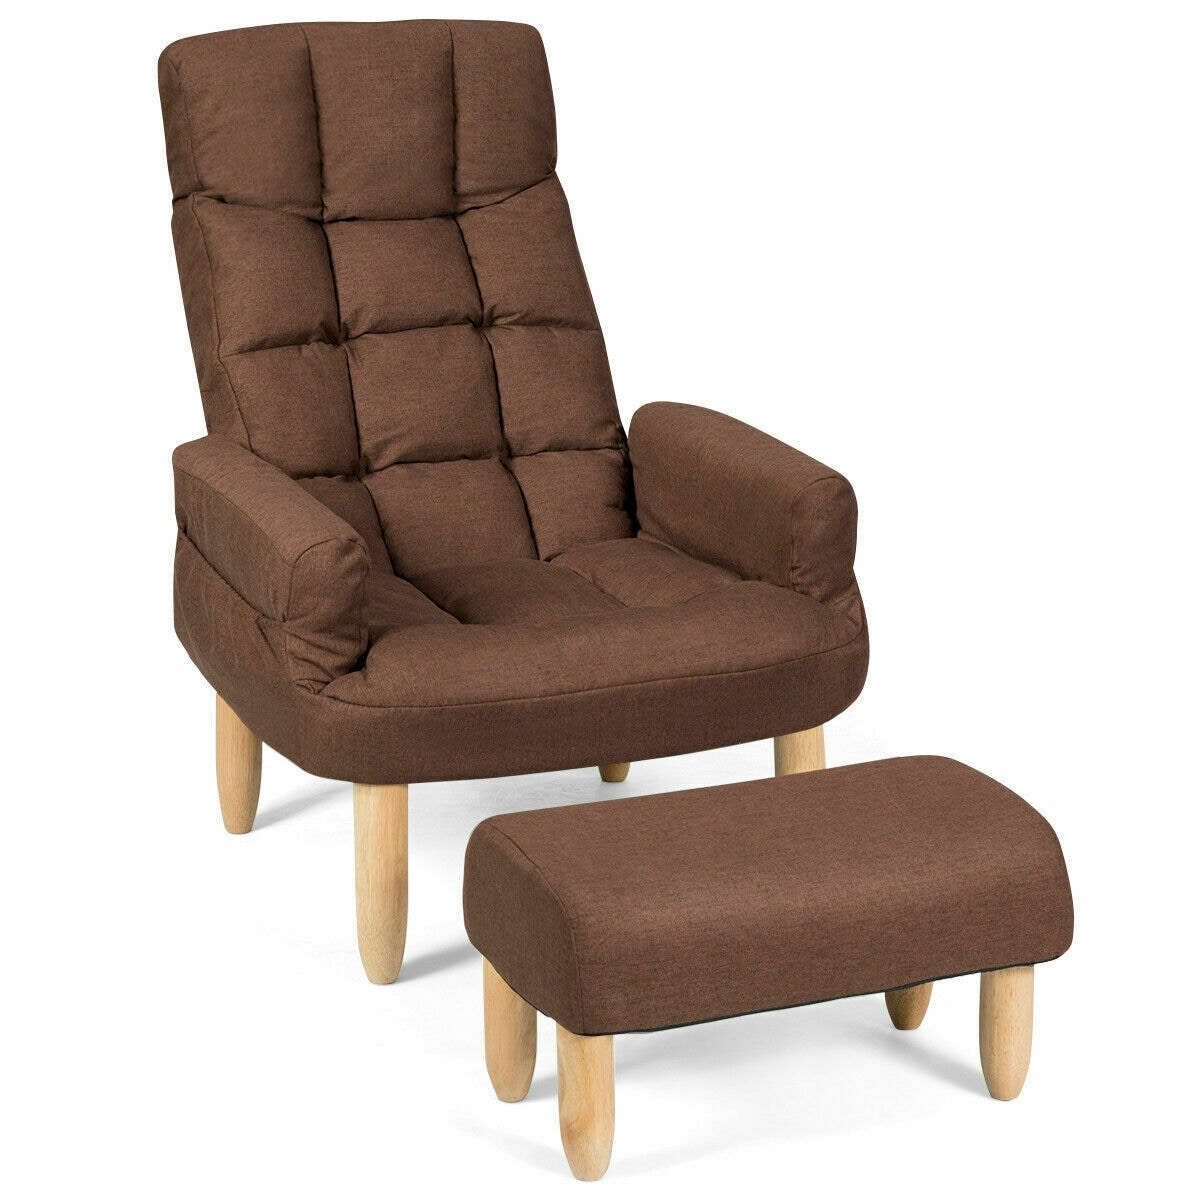 Gymax Adjustable Backrest Headrest Lazy Sofa Chair With Footstool Armrest -  As the picture shows